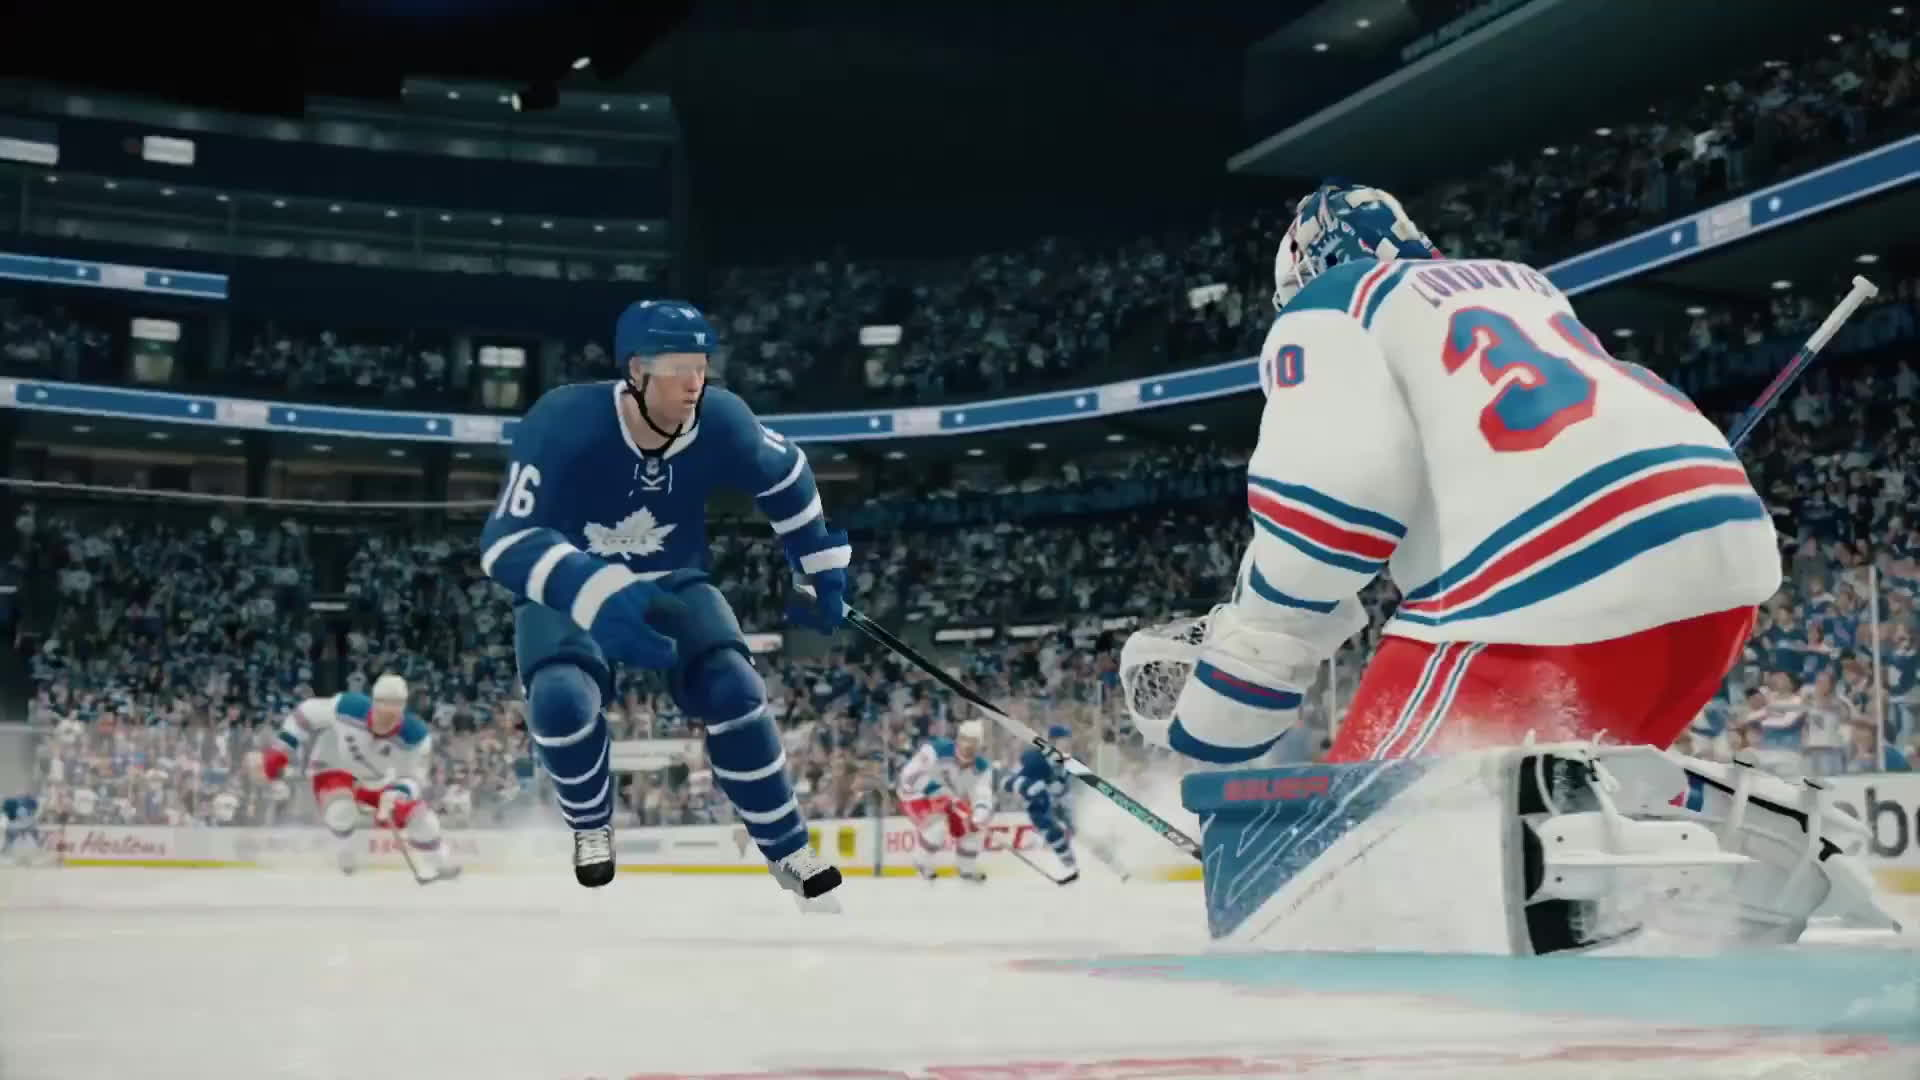 EA Canada, Electronic Arts, NHL 18, PS4, Review, Sports, Xbox One, game reviews, games, ign, ign game reviews, NHL 18 Review GIFs